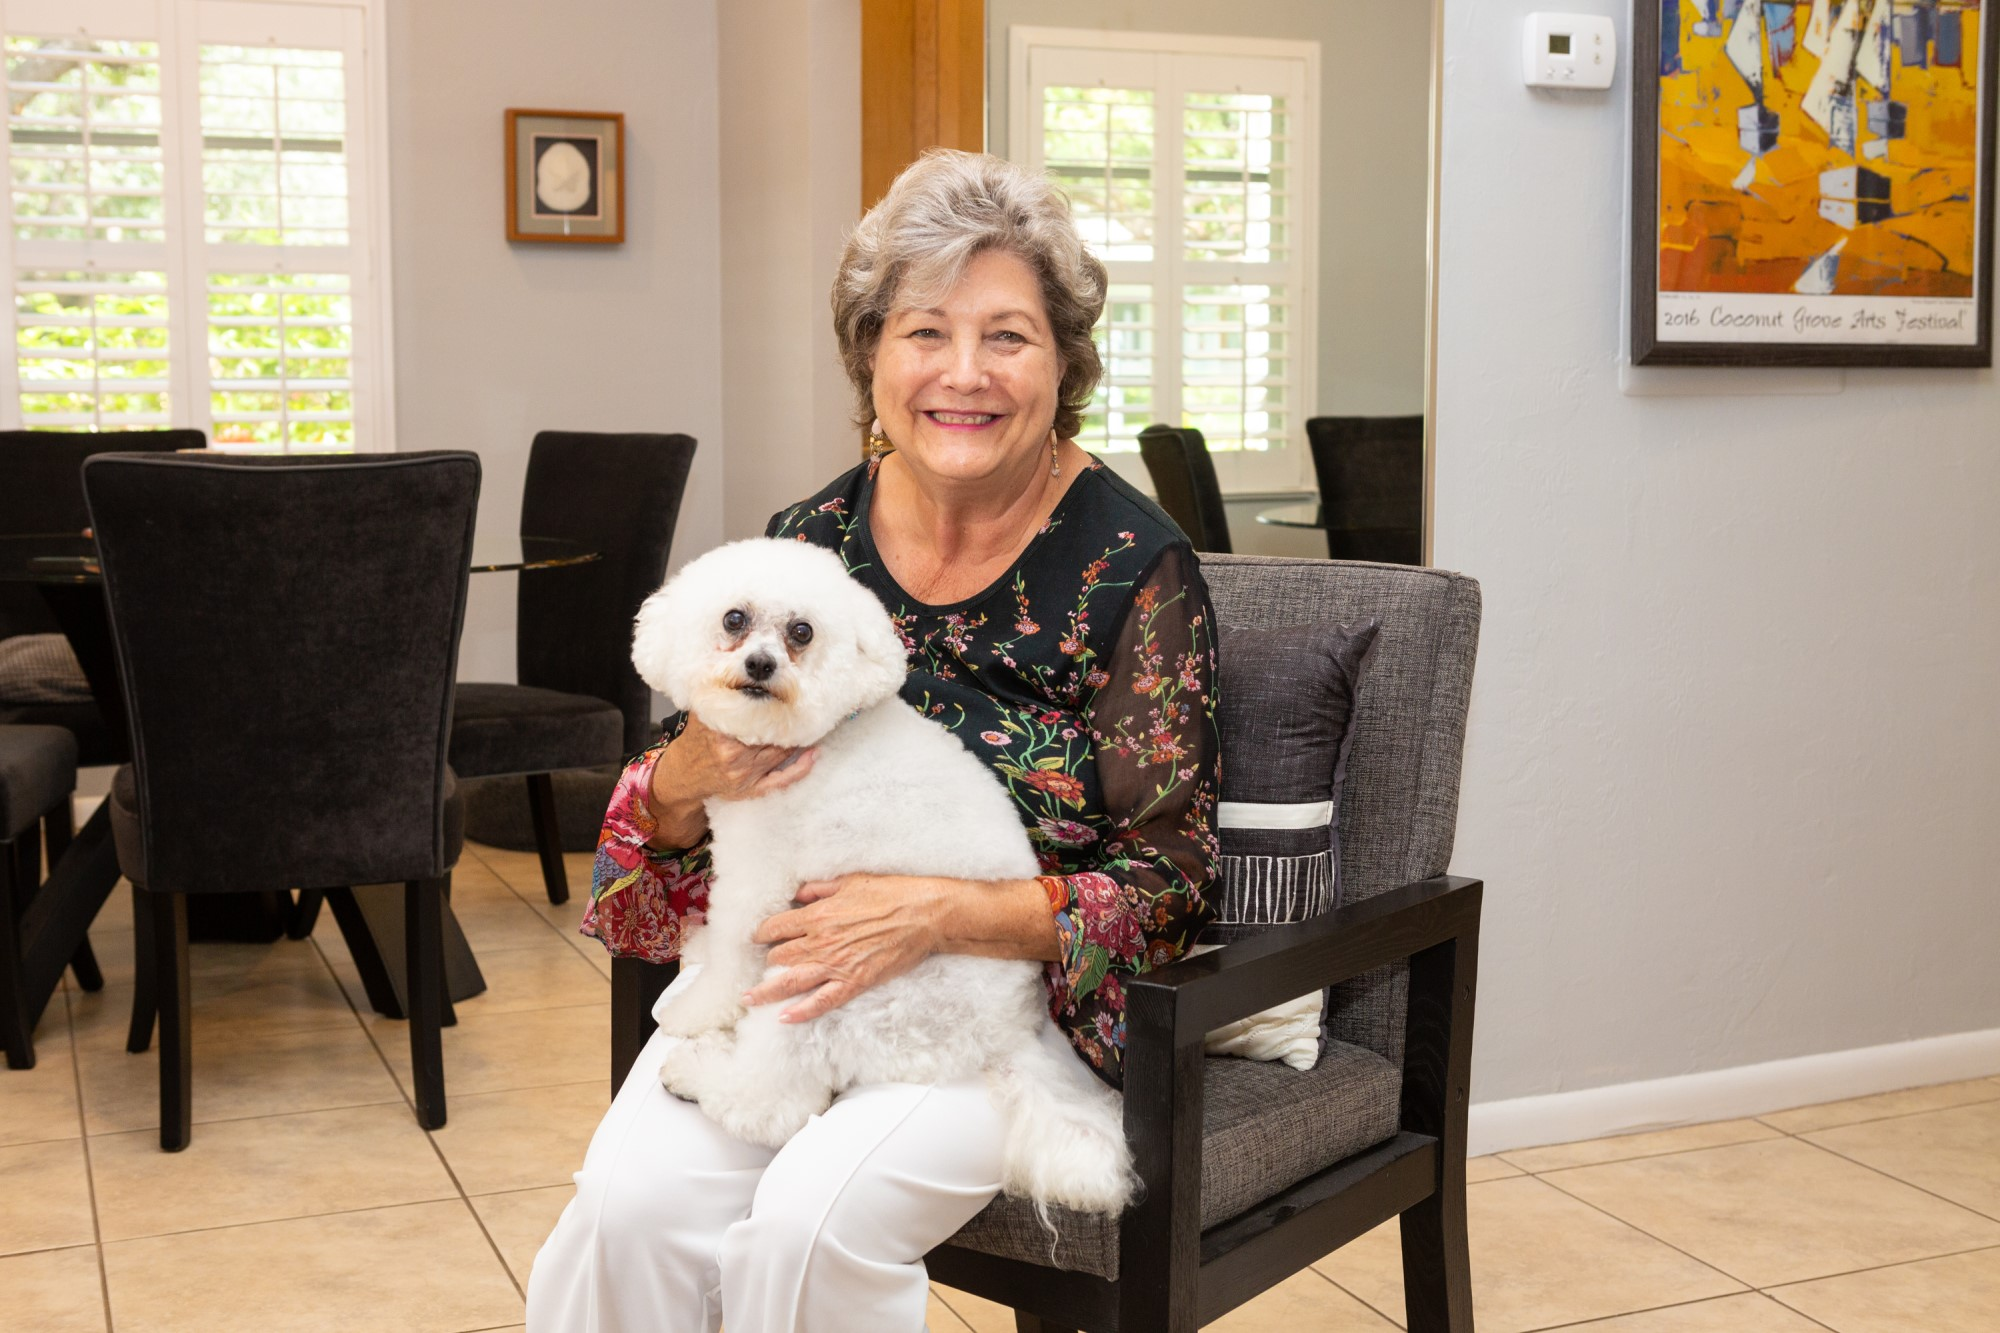 Dog Days of Summer: Perfect for Dogs and Their Owners at East Ridge at Cutler Bay